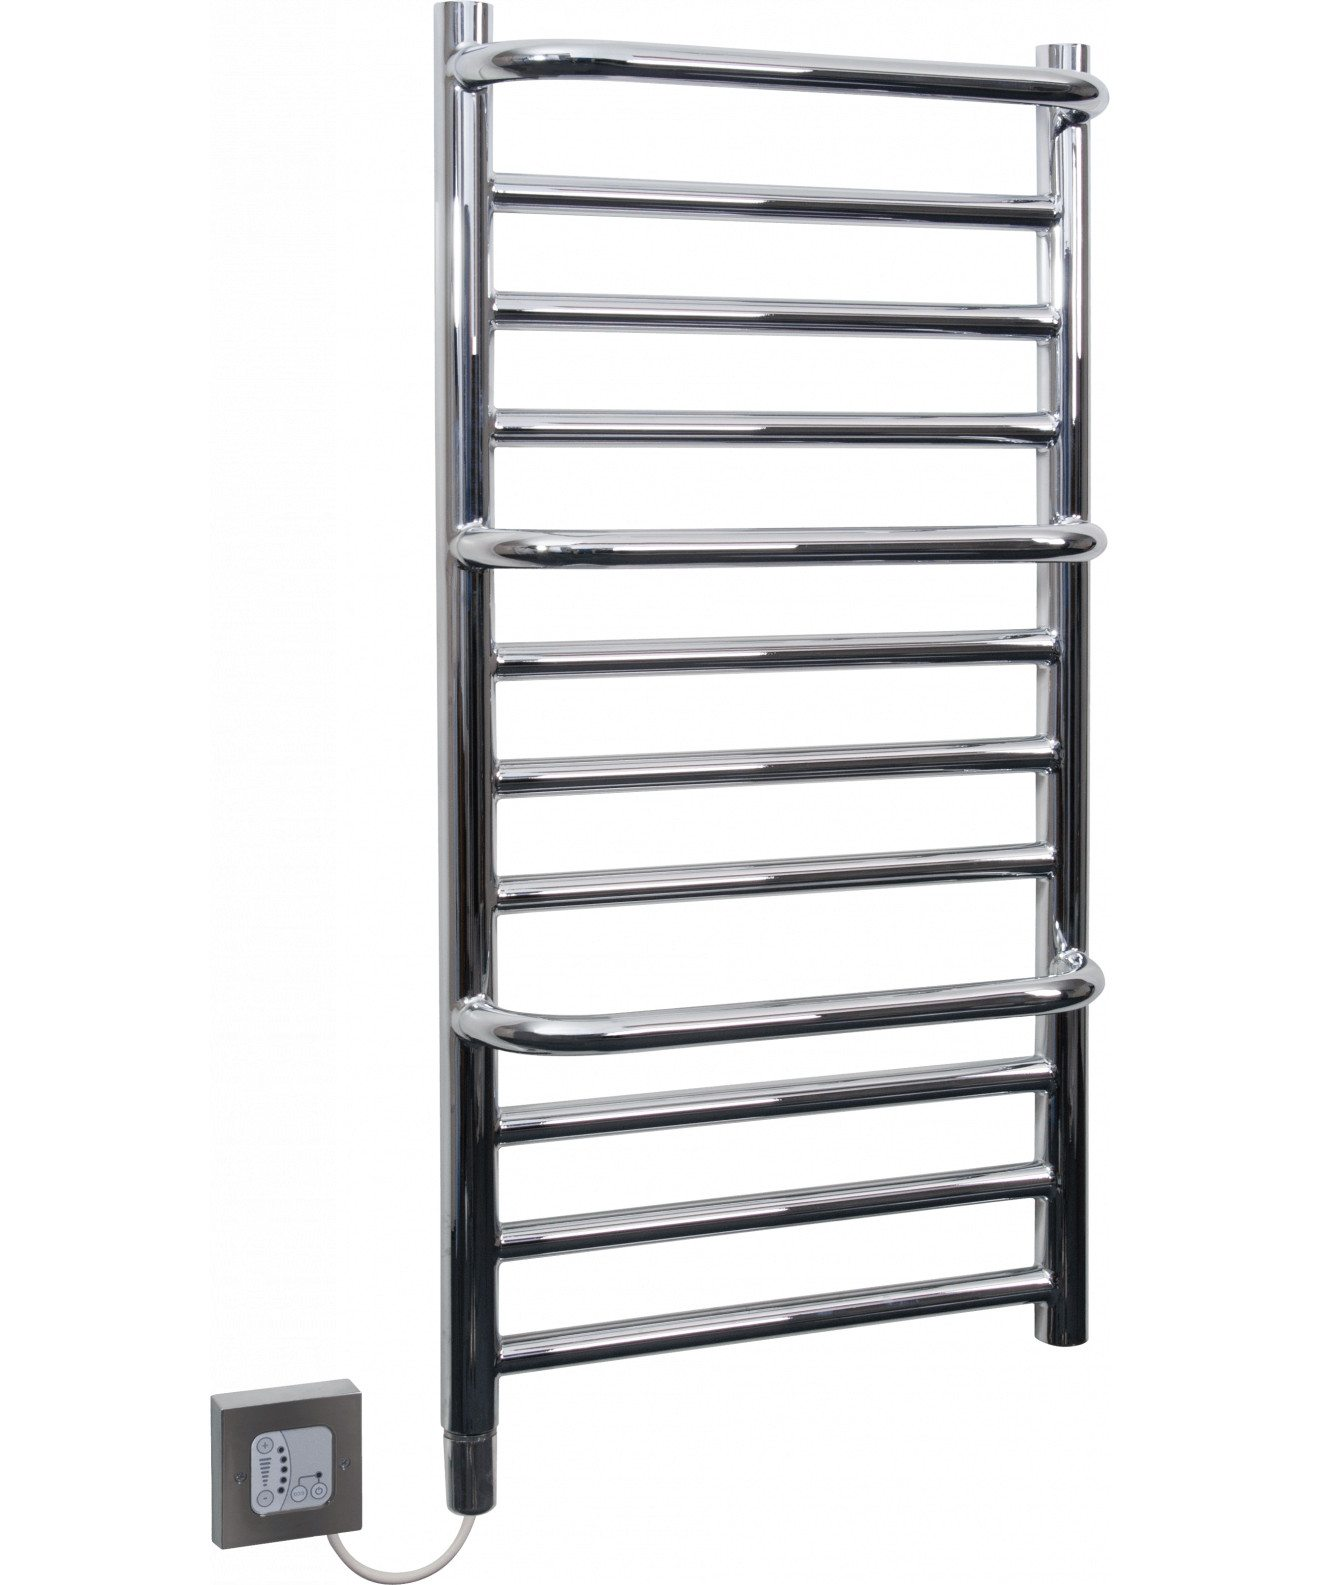 Towel Rails 120W Chrome Stepped Towel Rail CPTS CPTS 0 0